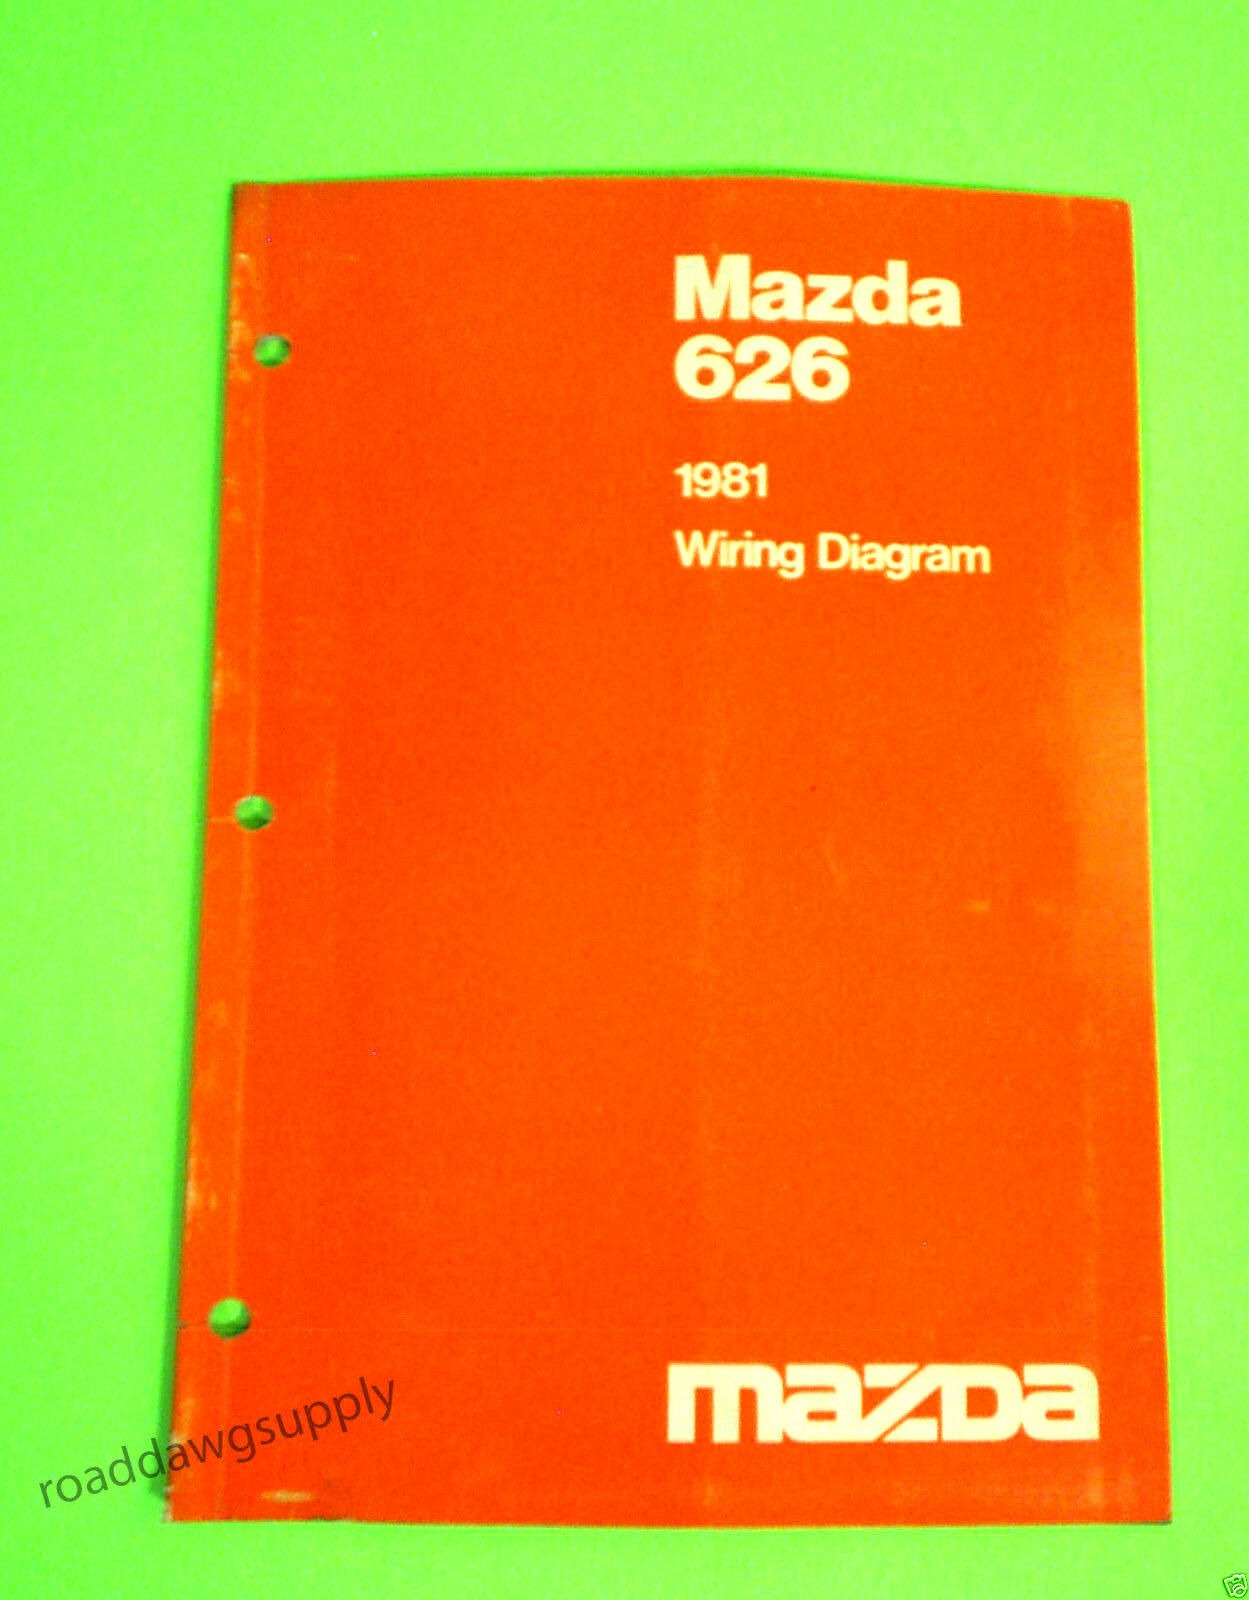 1981 Mazda 626 Wiring Diagrams Service Shop Repair Manual 840 1989 B2200 Diagram 1 Of 1only Available